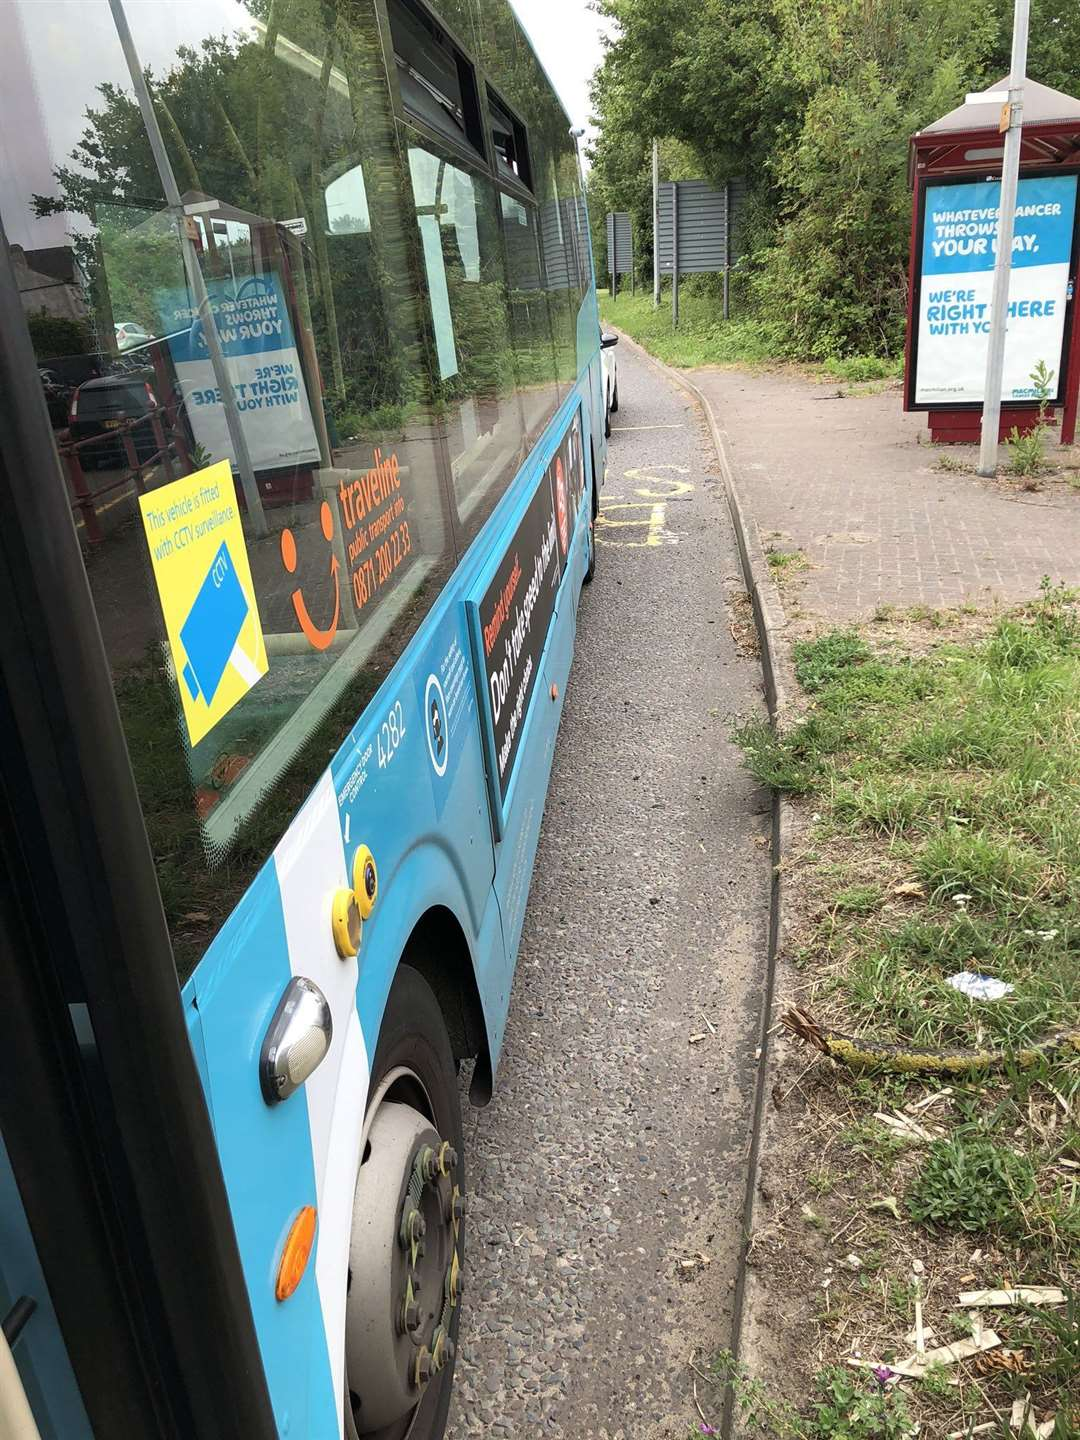 The bus stopped by police after the driver was caught using his phone in Snodland (37833079)